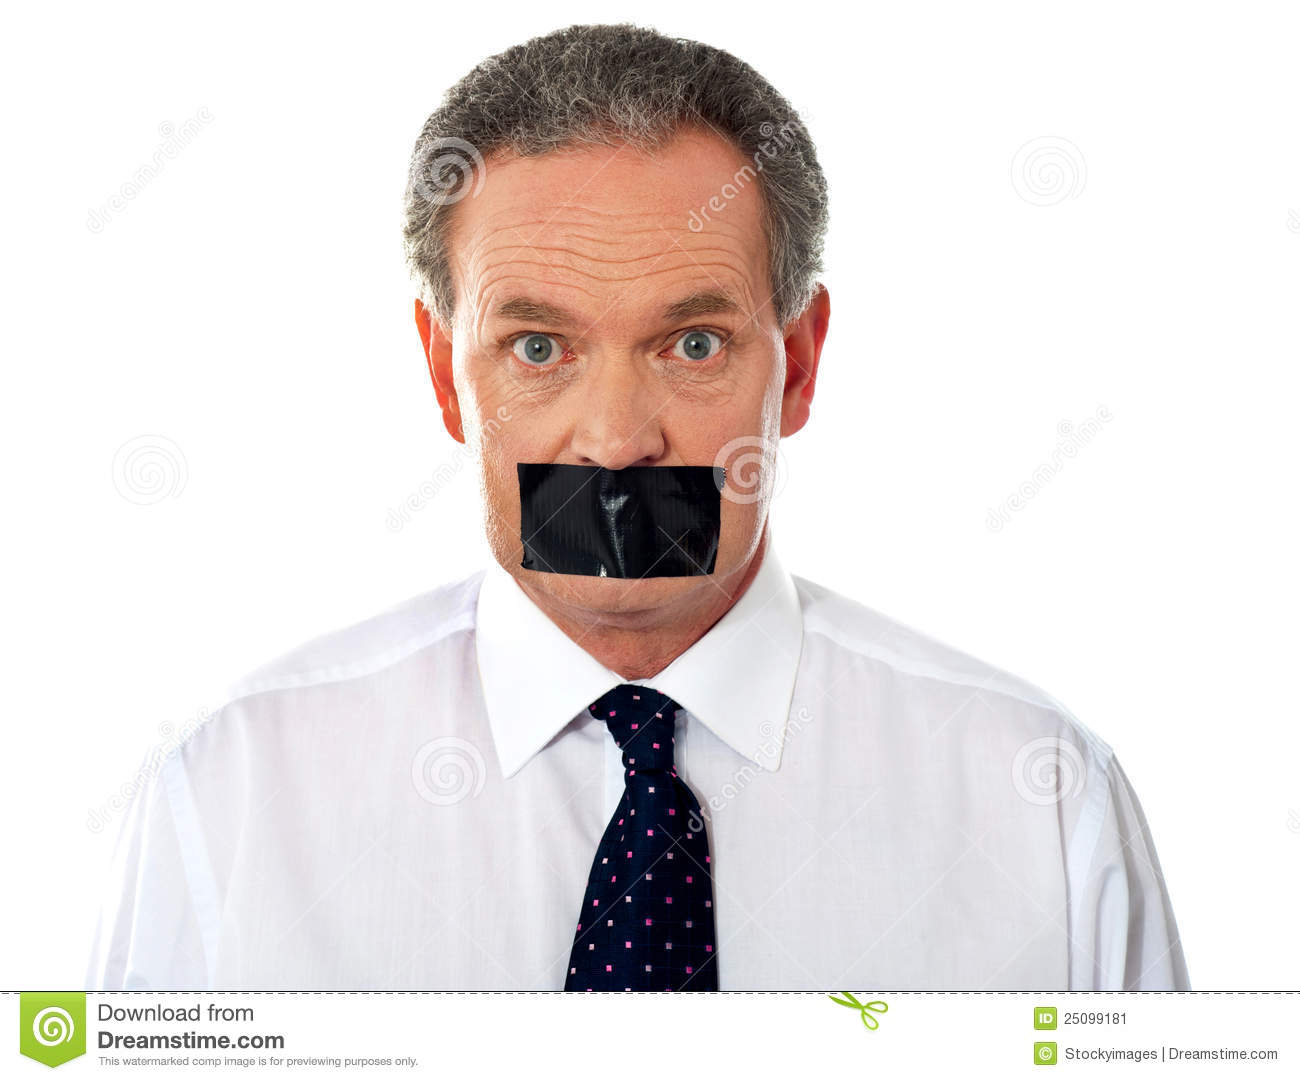 Businessman with taped mouth